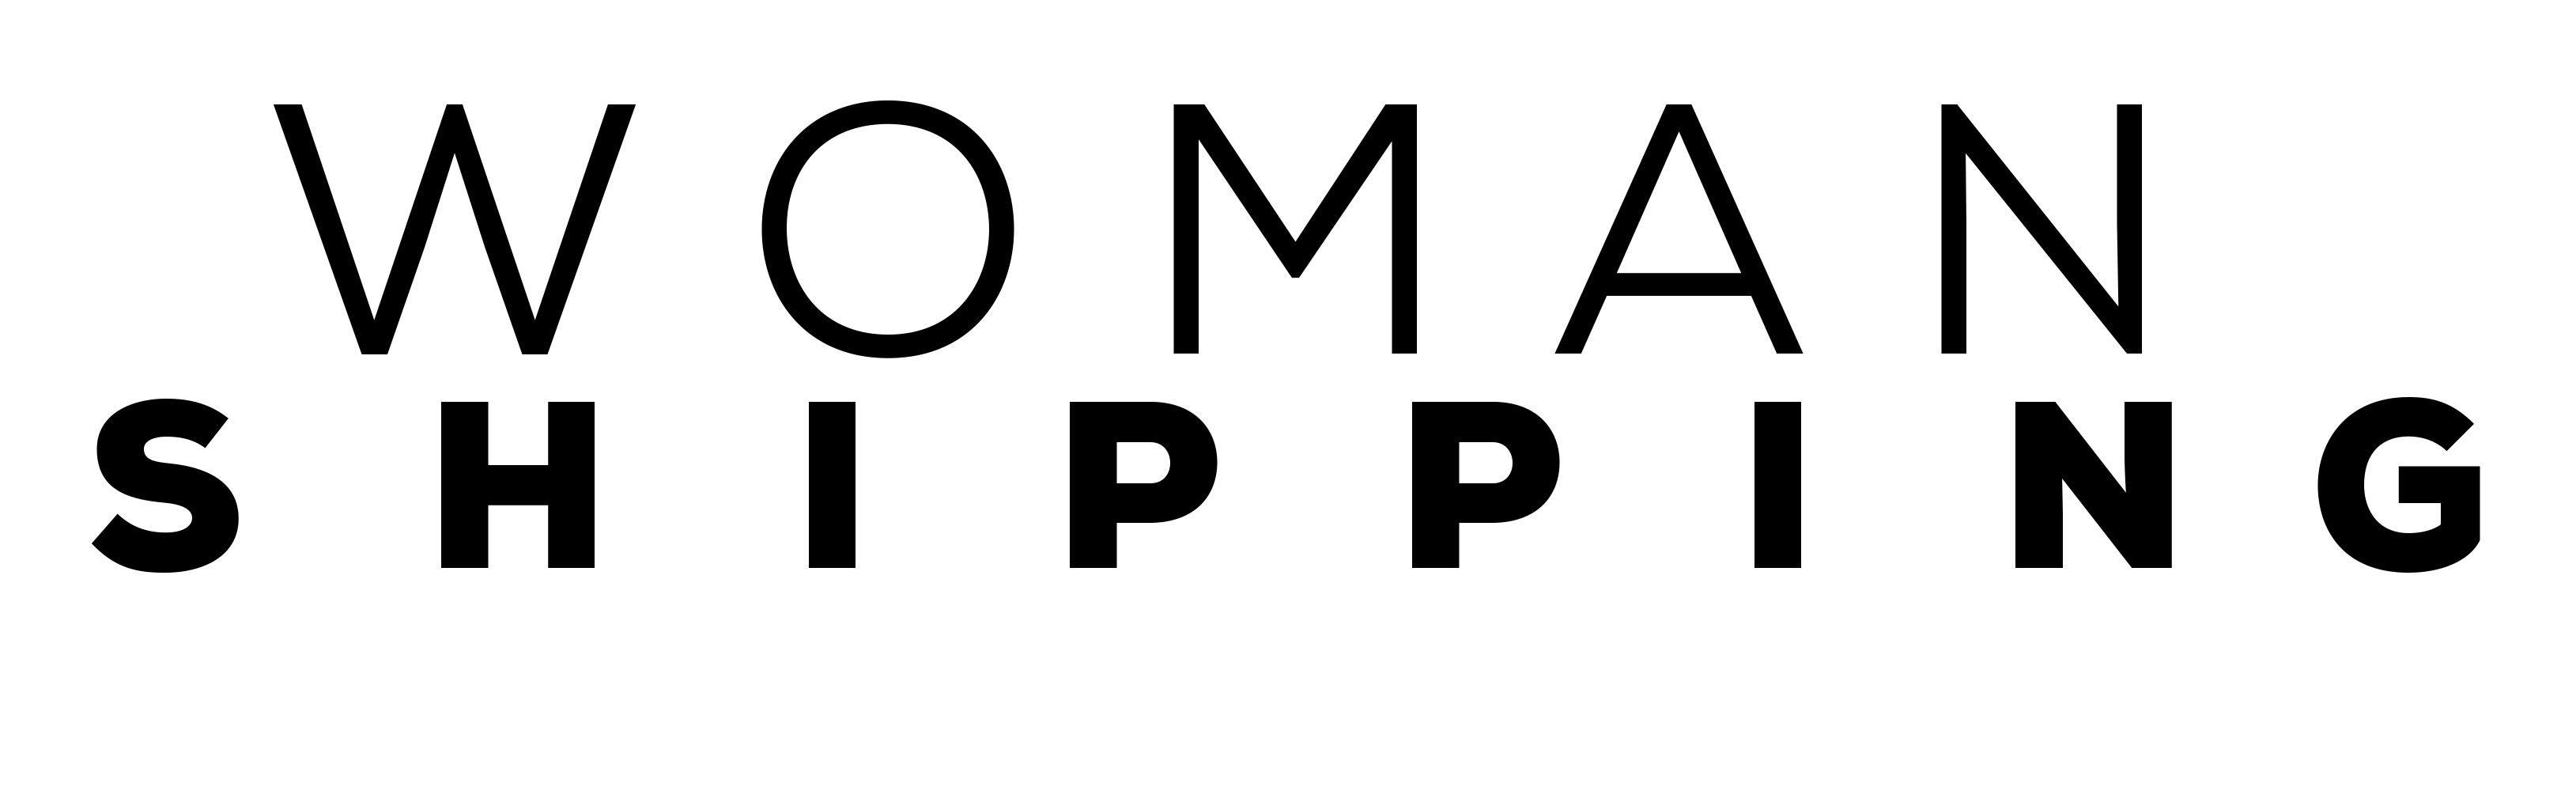 logotipo woman shipping